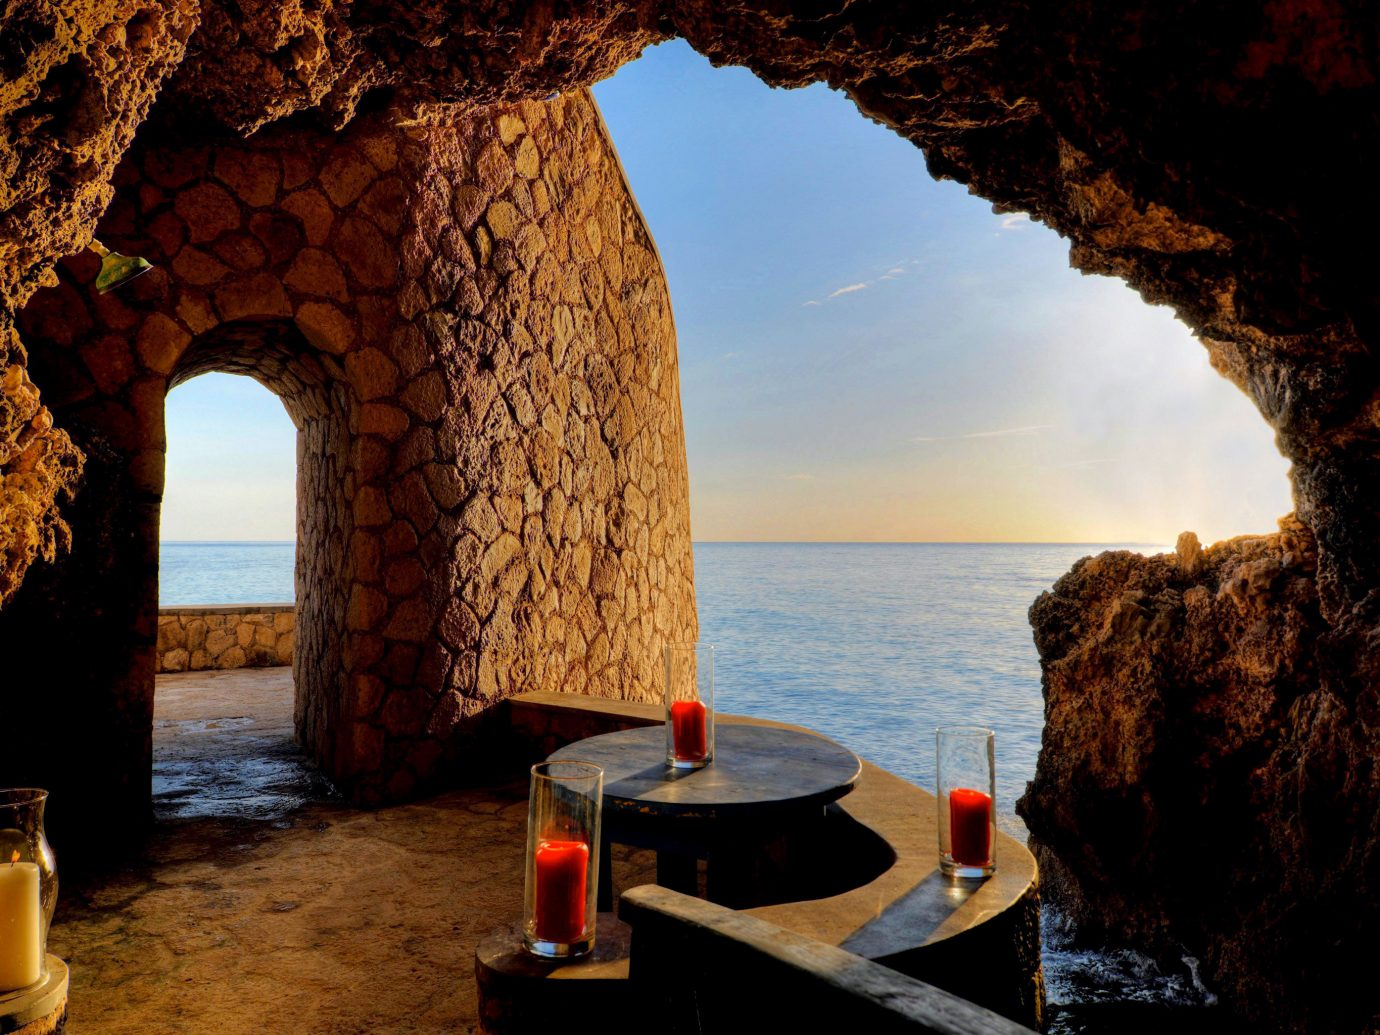 Dining Drink Eat Hotels Luxury Romance Romantic Scenic views Trip Ideas Tropical Waterfront water outdoor building mountain arch Sea evening overlooking formation